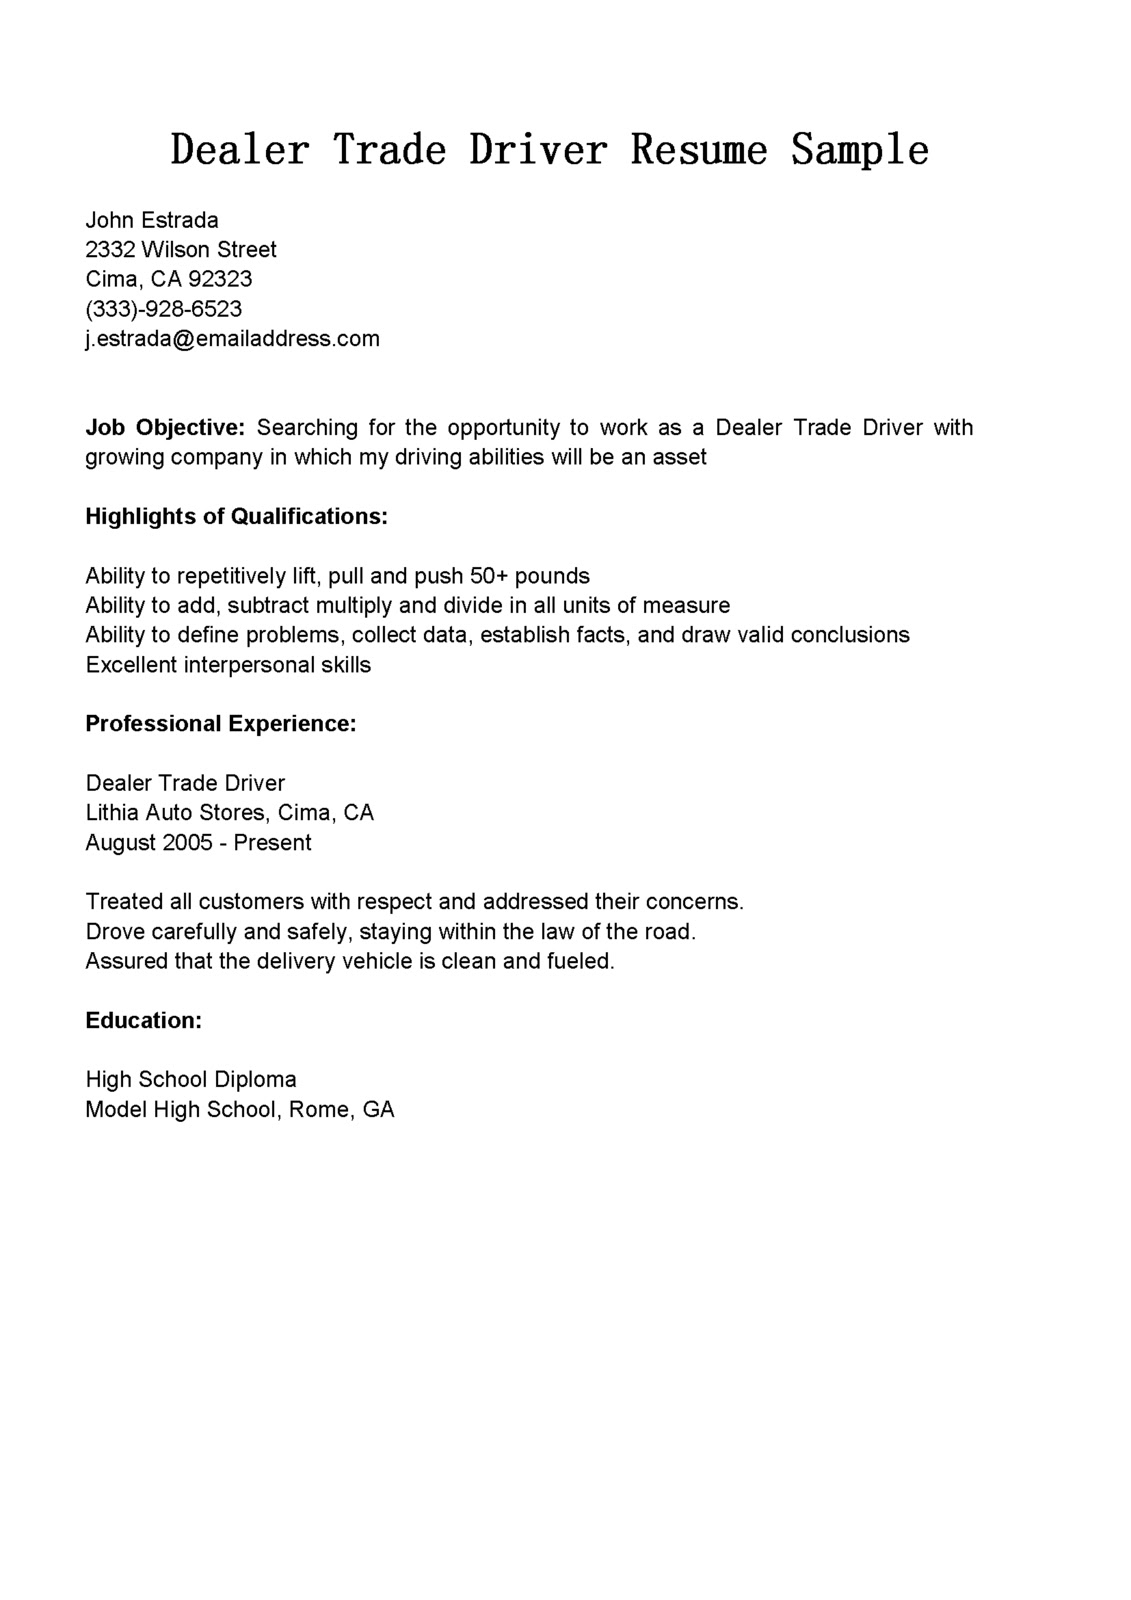 Los Angeles Resume Service - Angie\'s List cdl class a driver resume ...